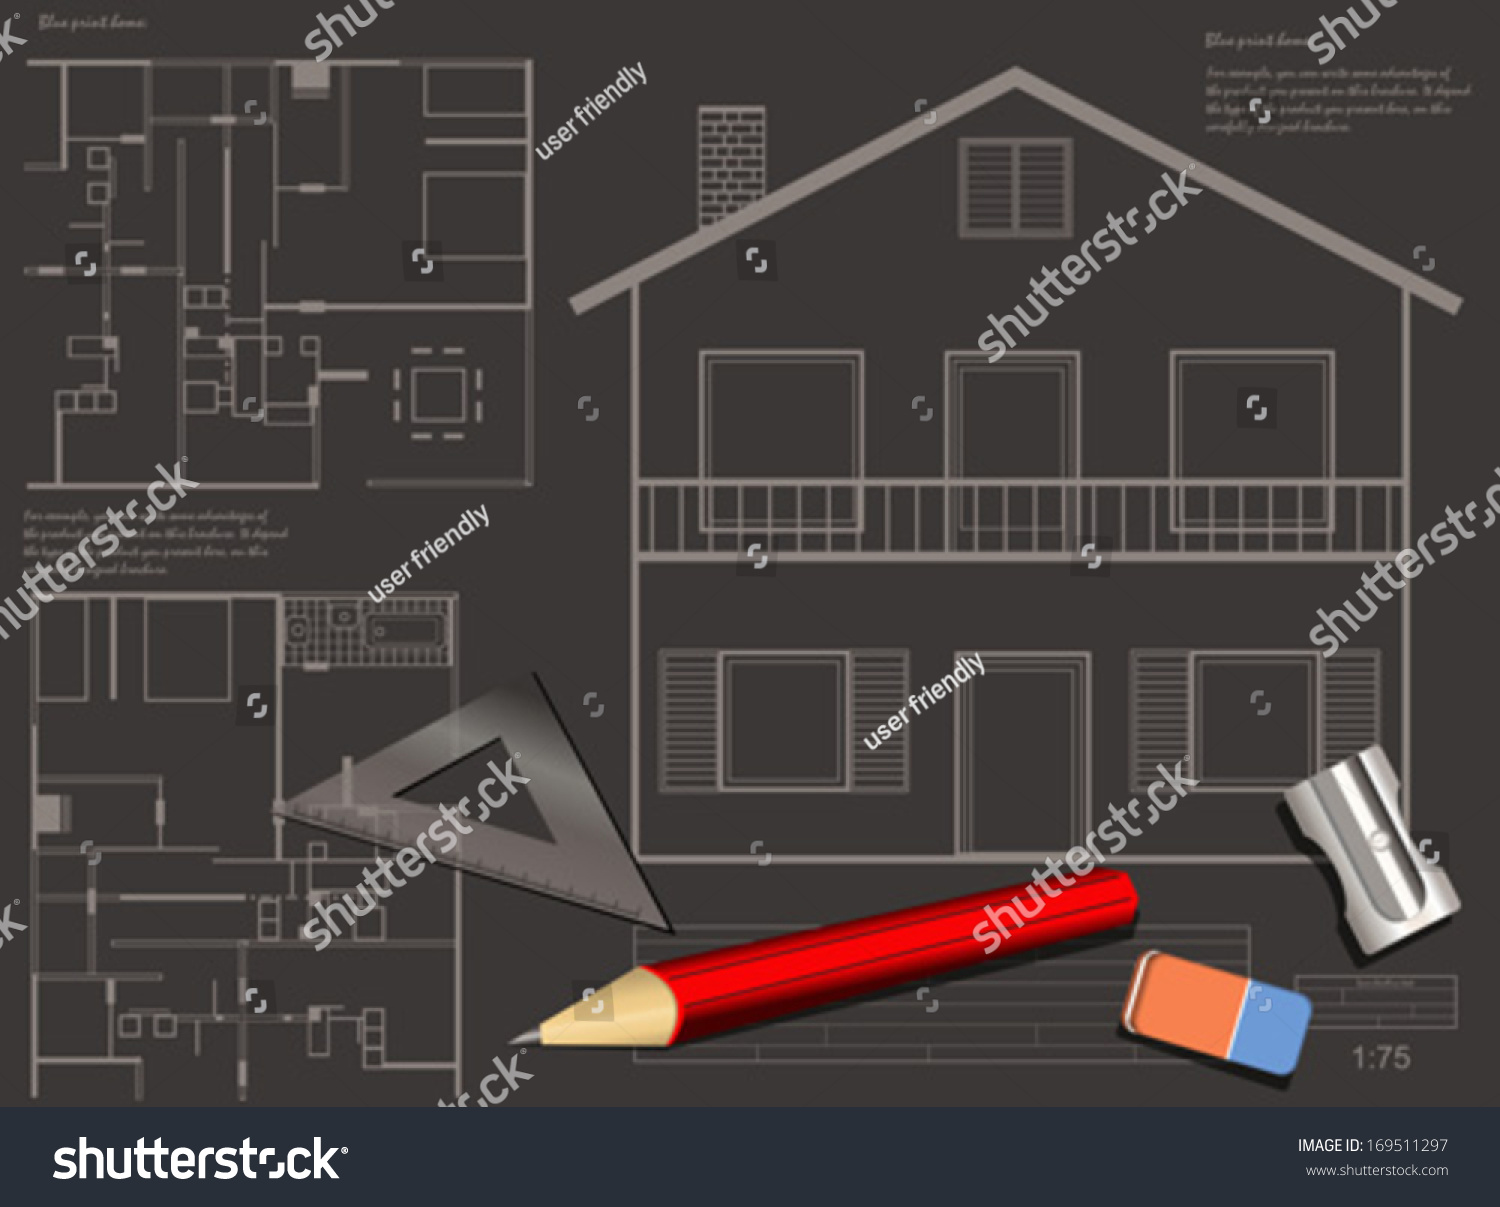 House construction blueprint vector background stock vector house construction blueprint vector background malvernweather Images